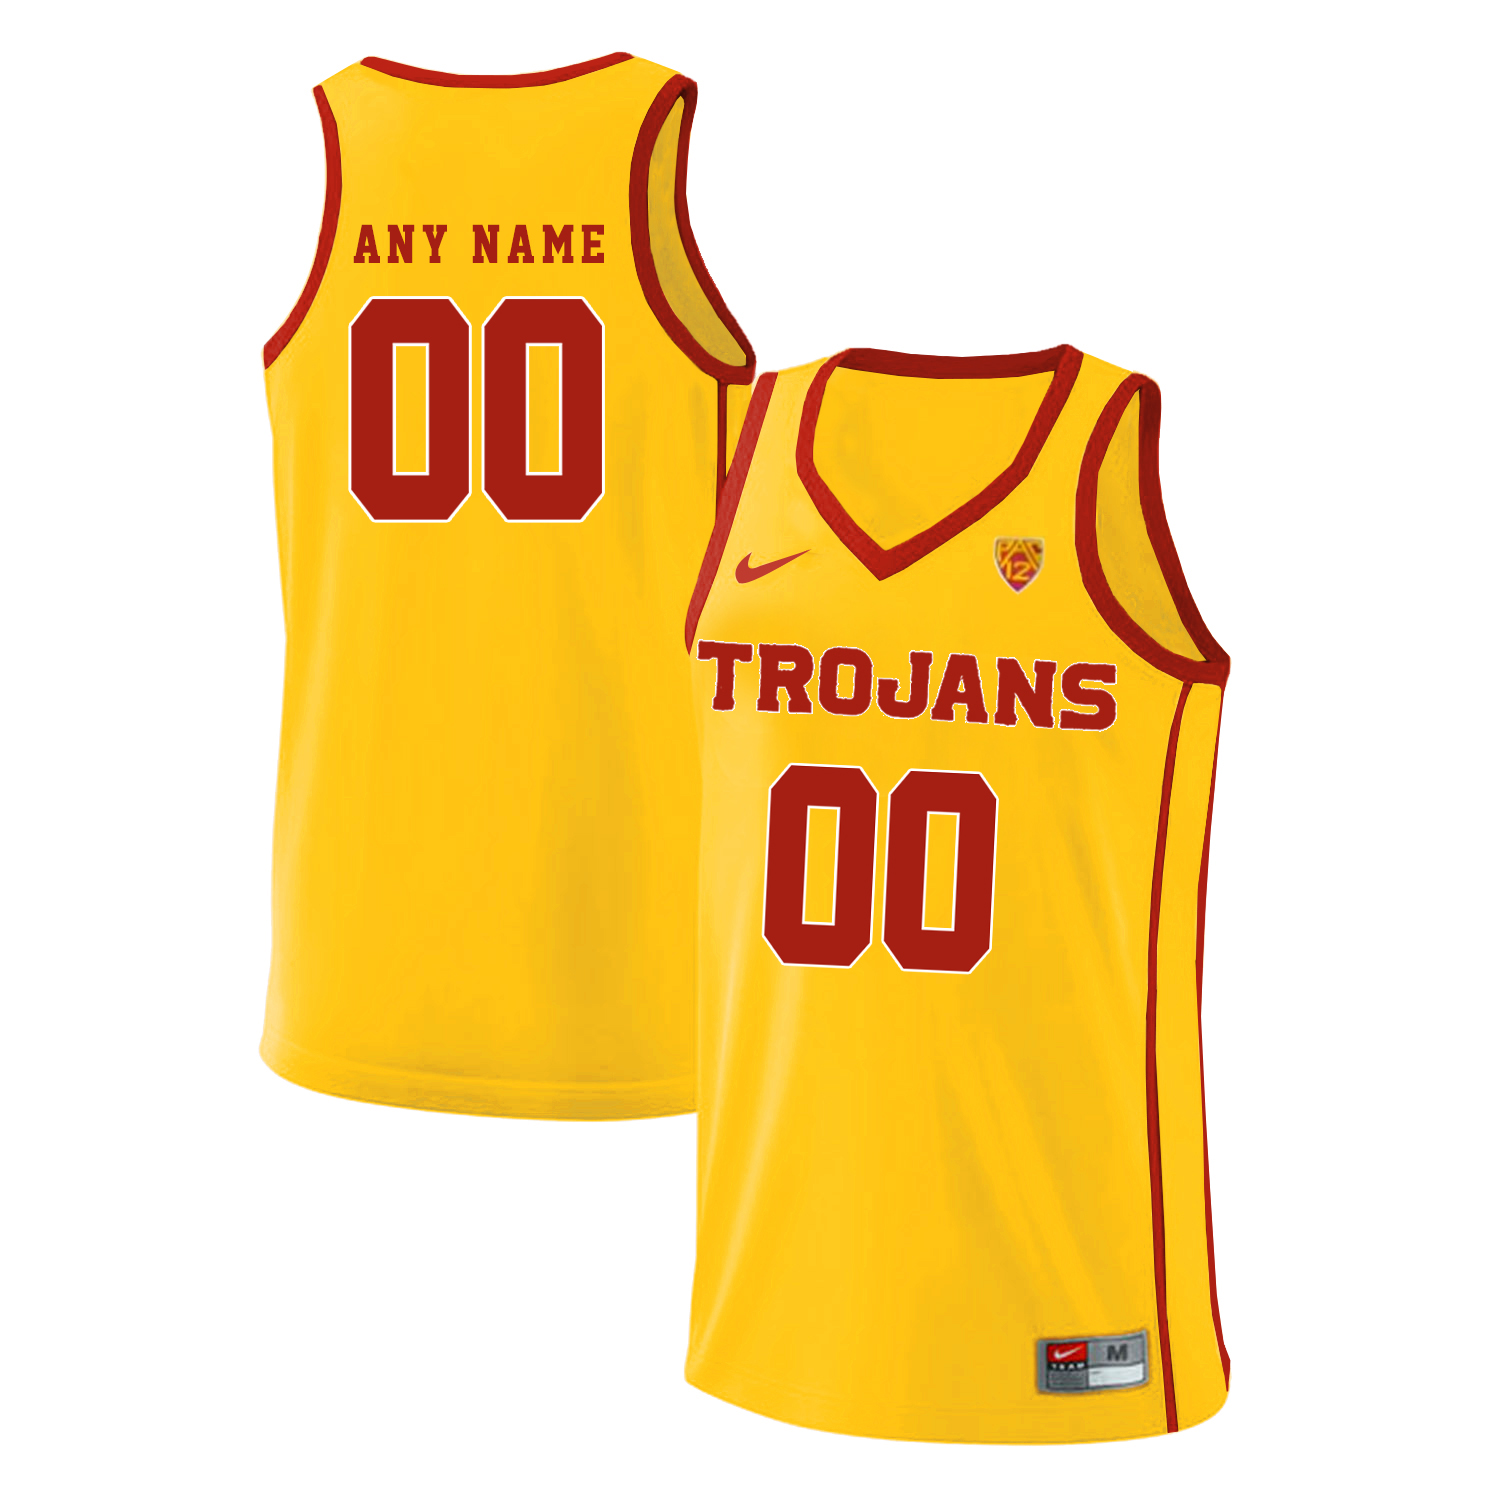 USC Trojans Yellow Men's Performance Customized Basketball Jersey